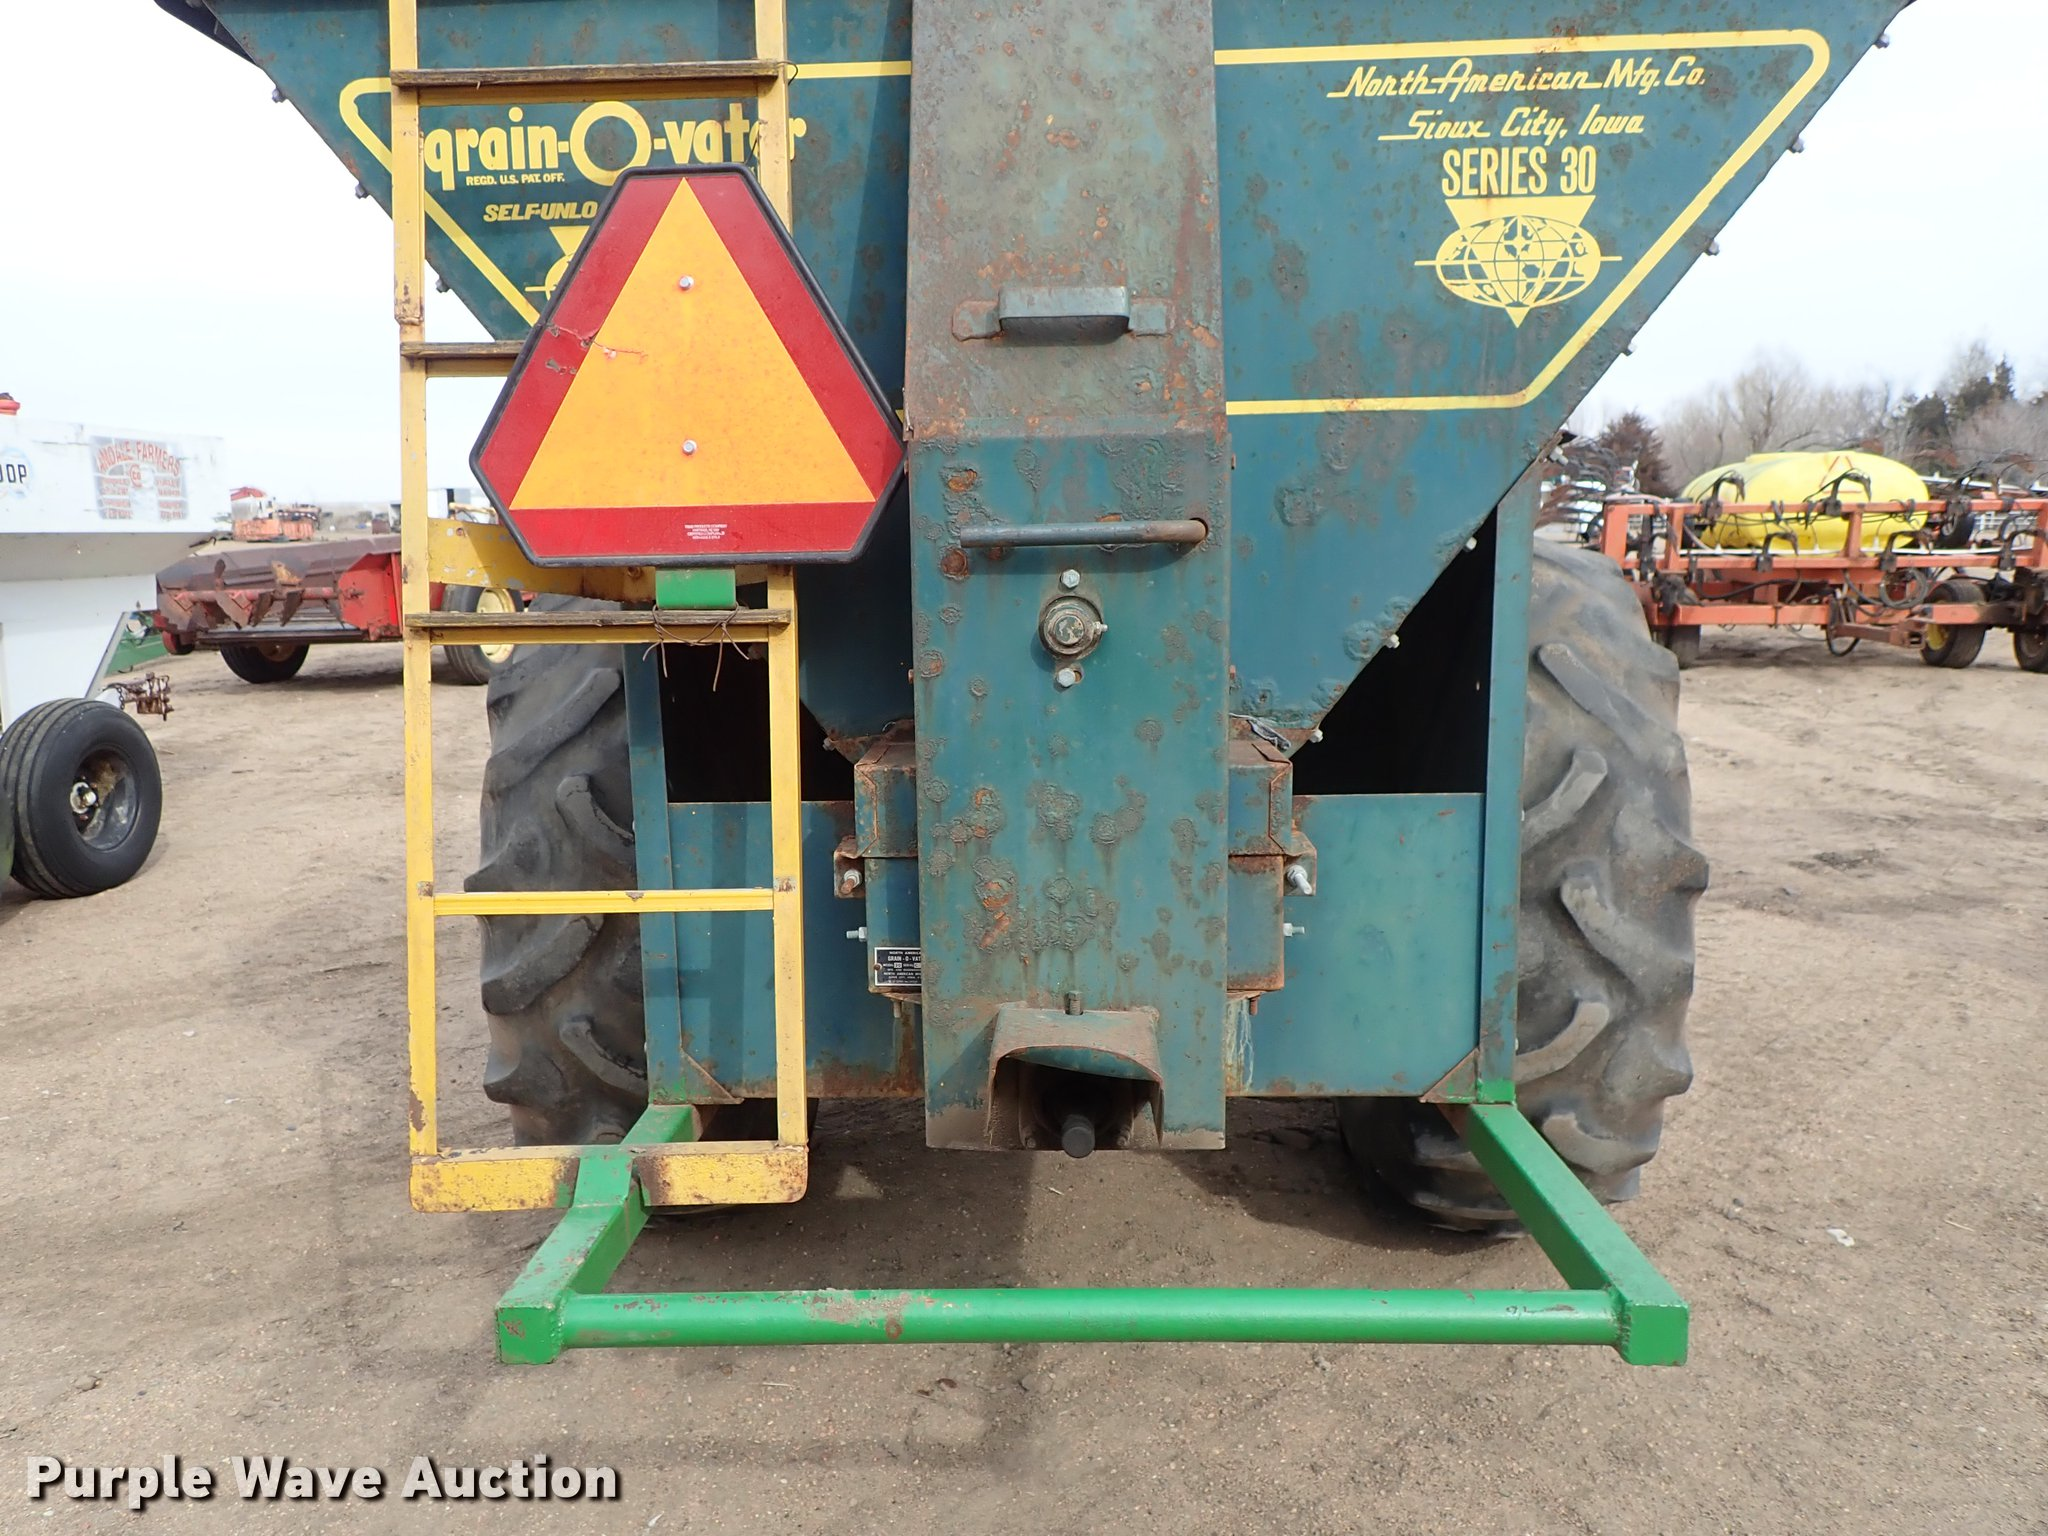 ce6ba69f8d290 ... Grain-O-Vator Series 30 feed wagon Full size in new window ...